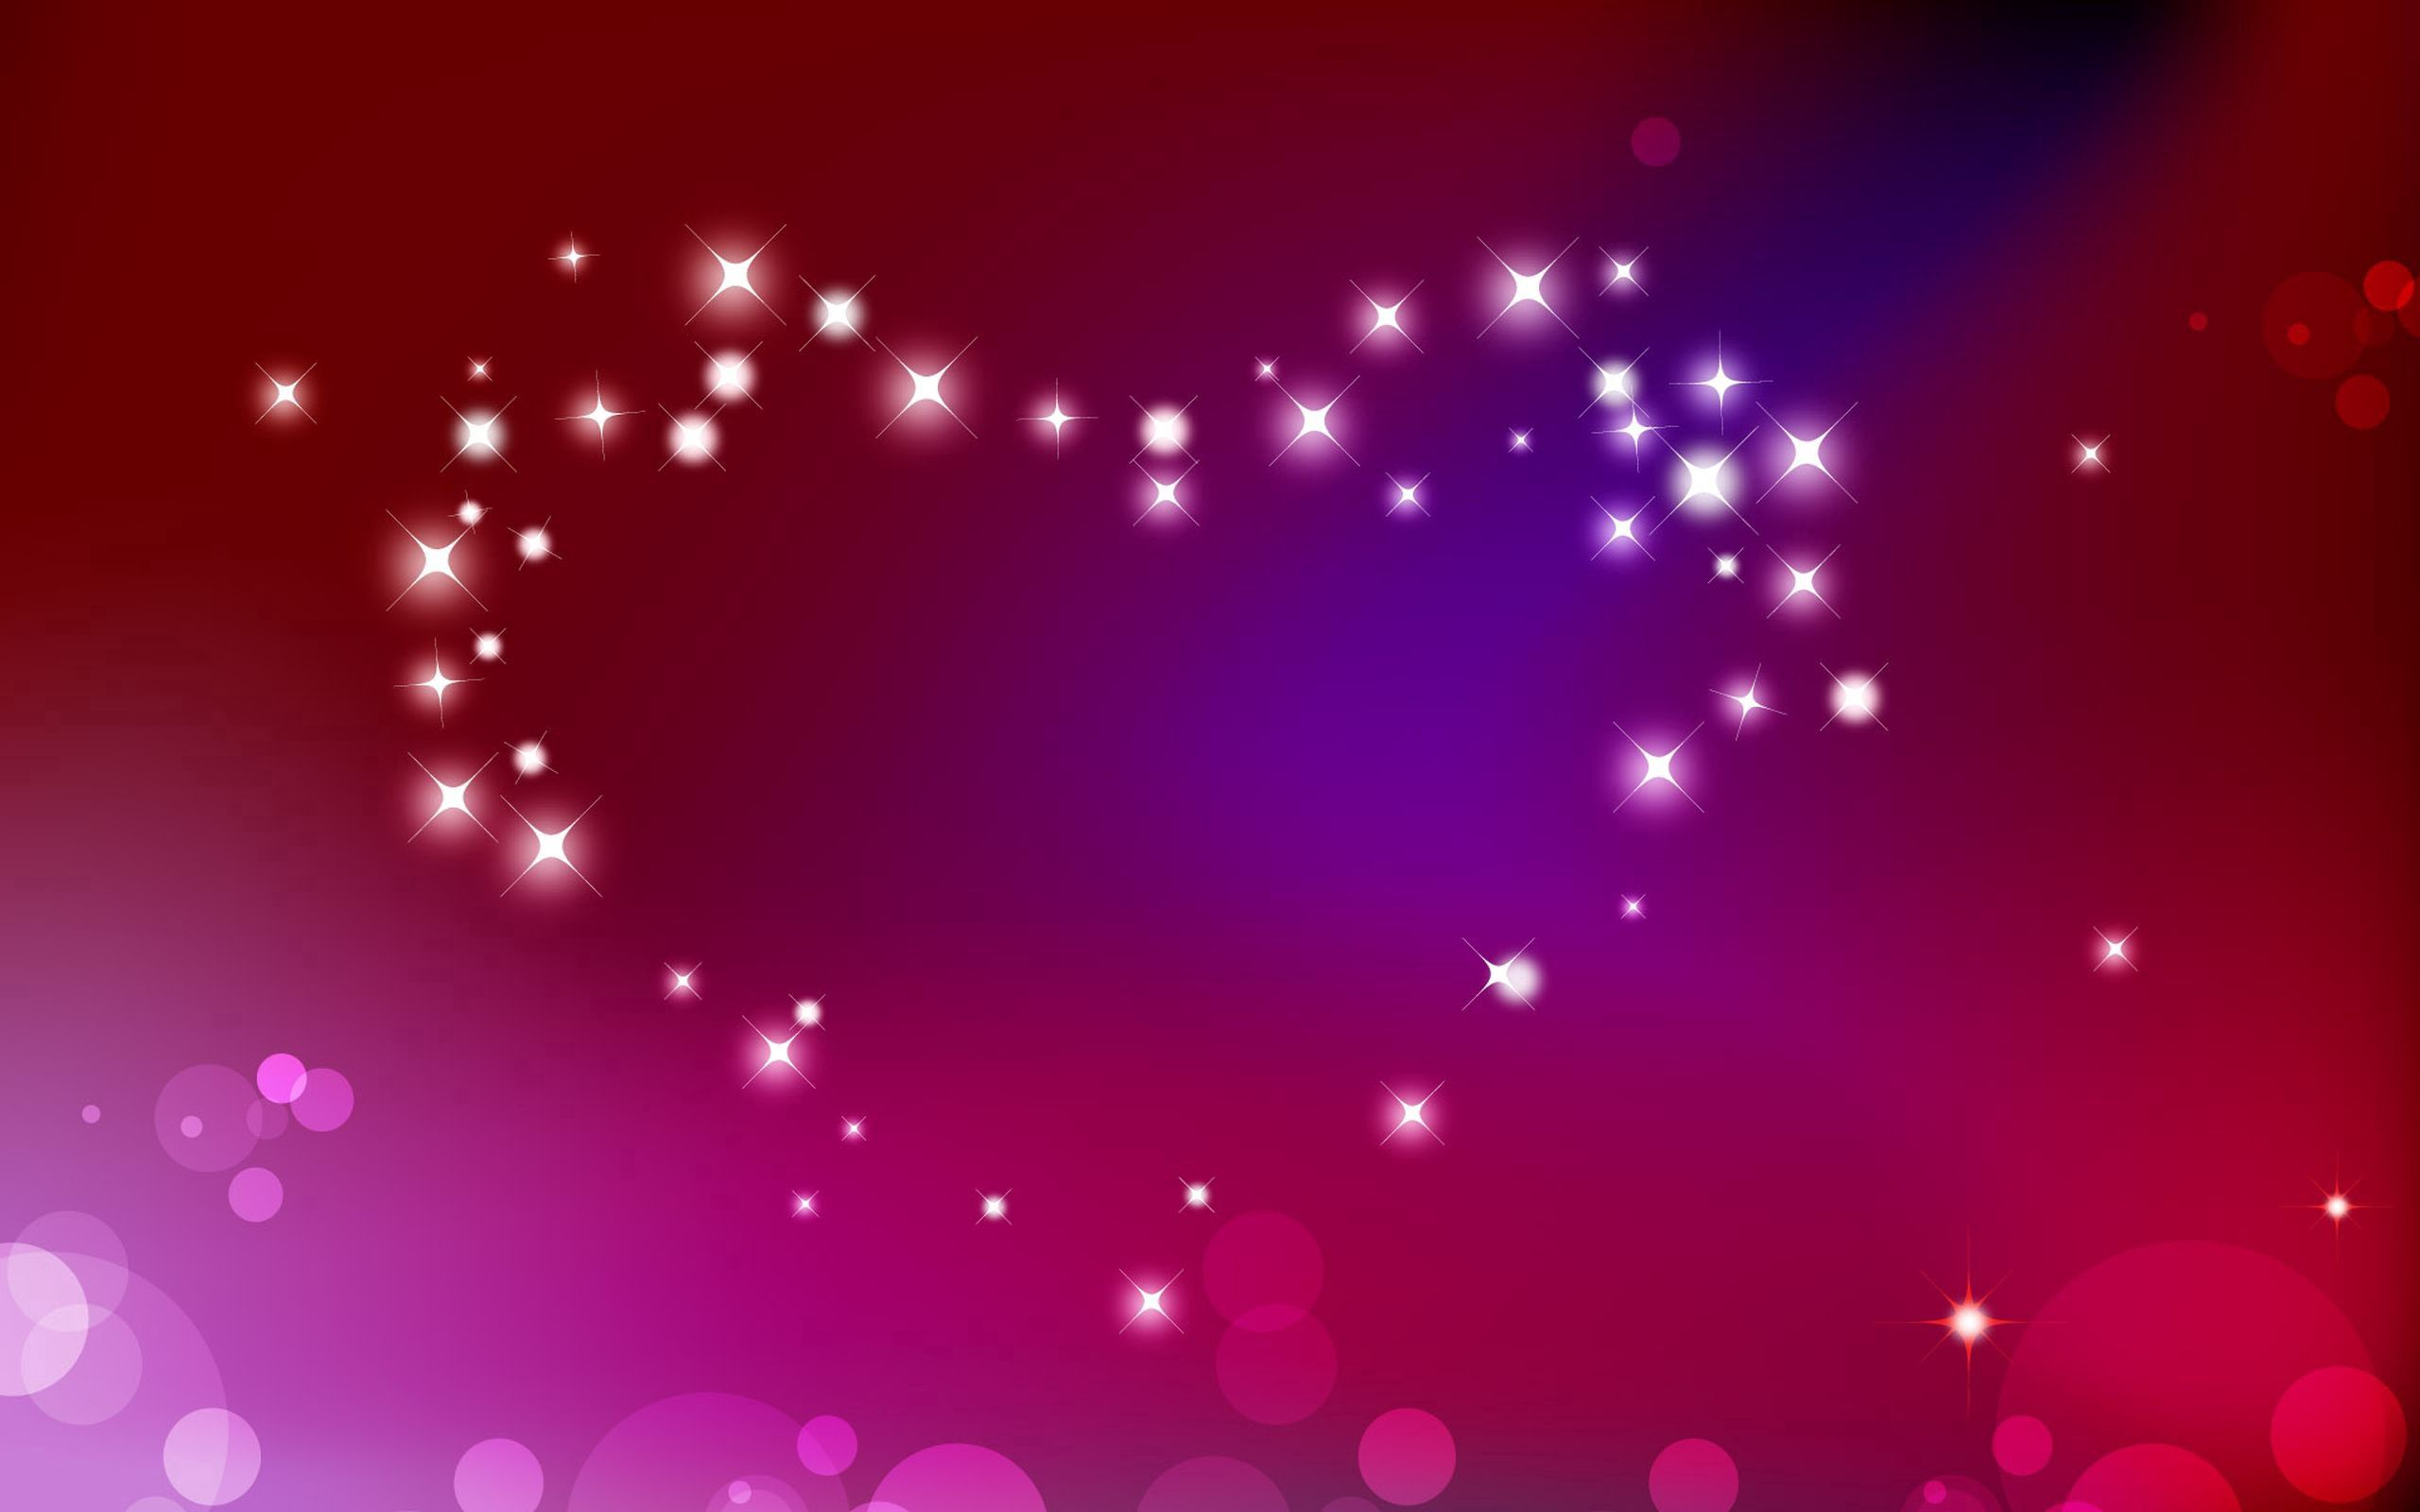 110096 download wallpaper Abstract, Heart, Glare, Shine, Brilliance screensavers and pictures for free